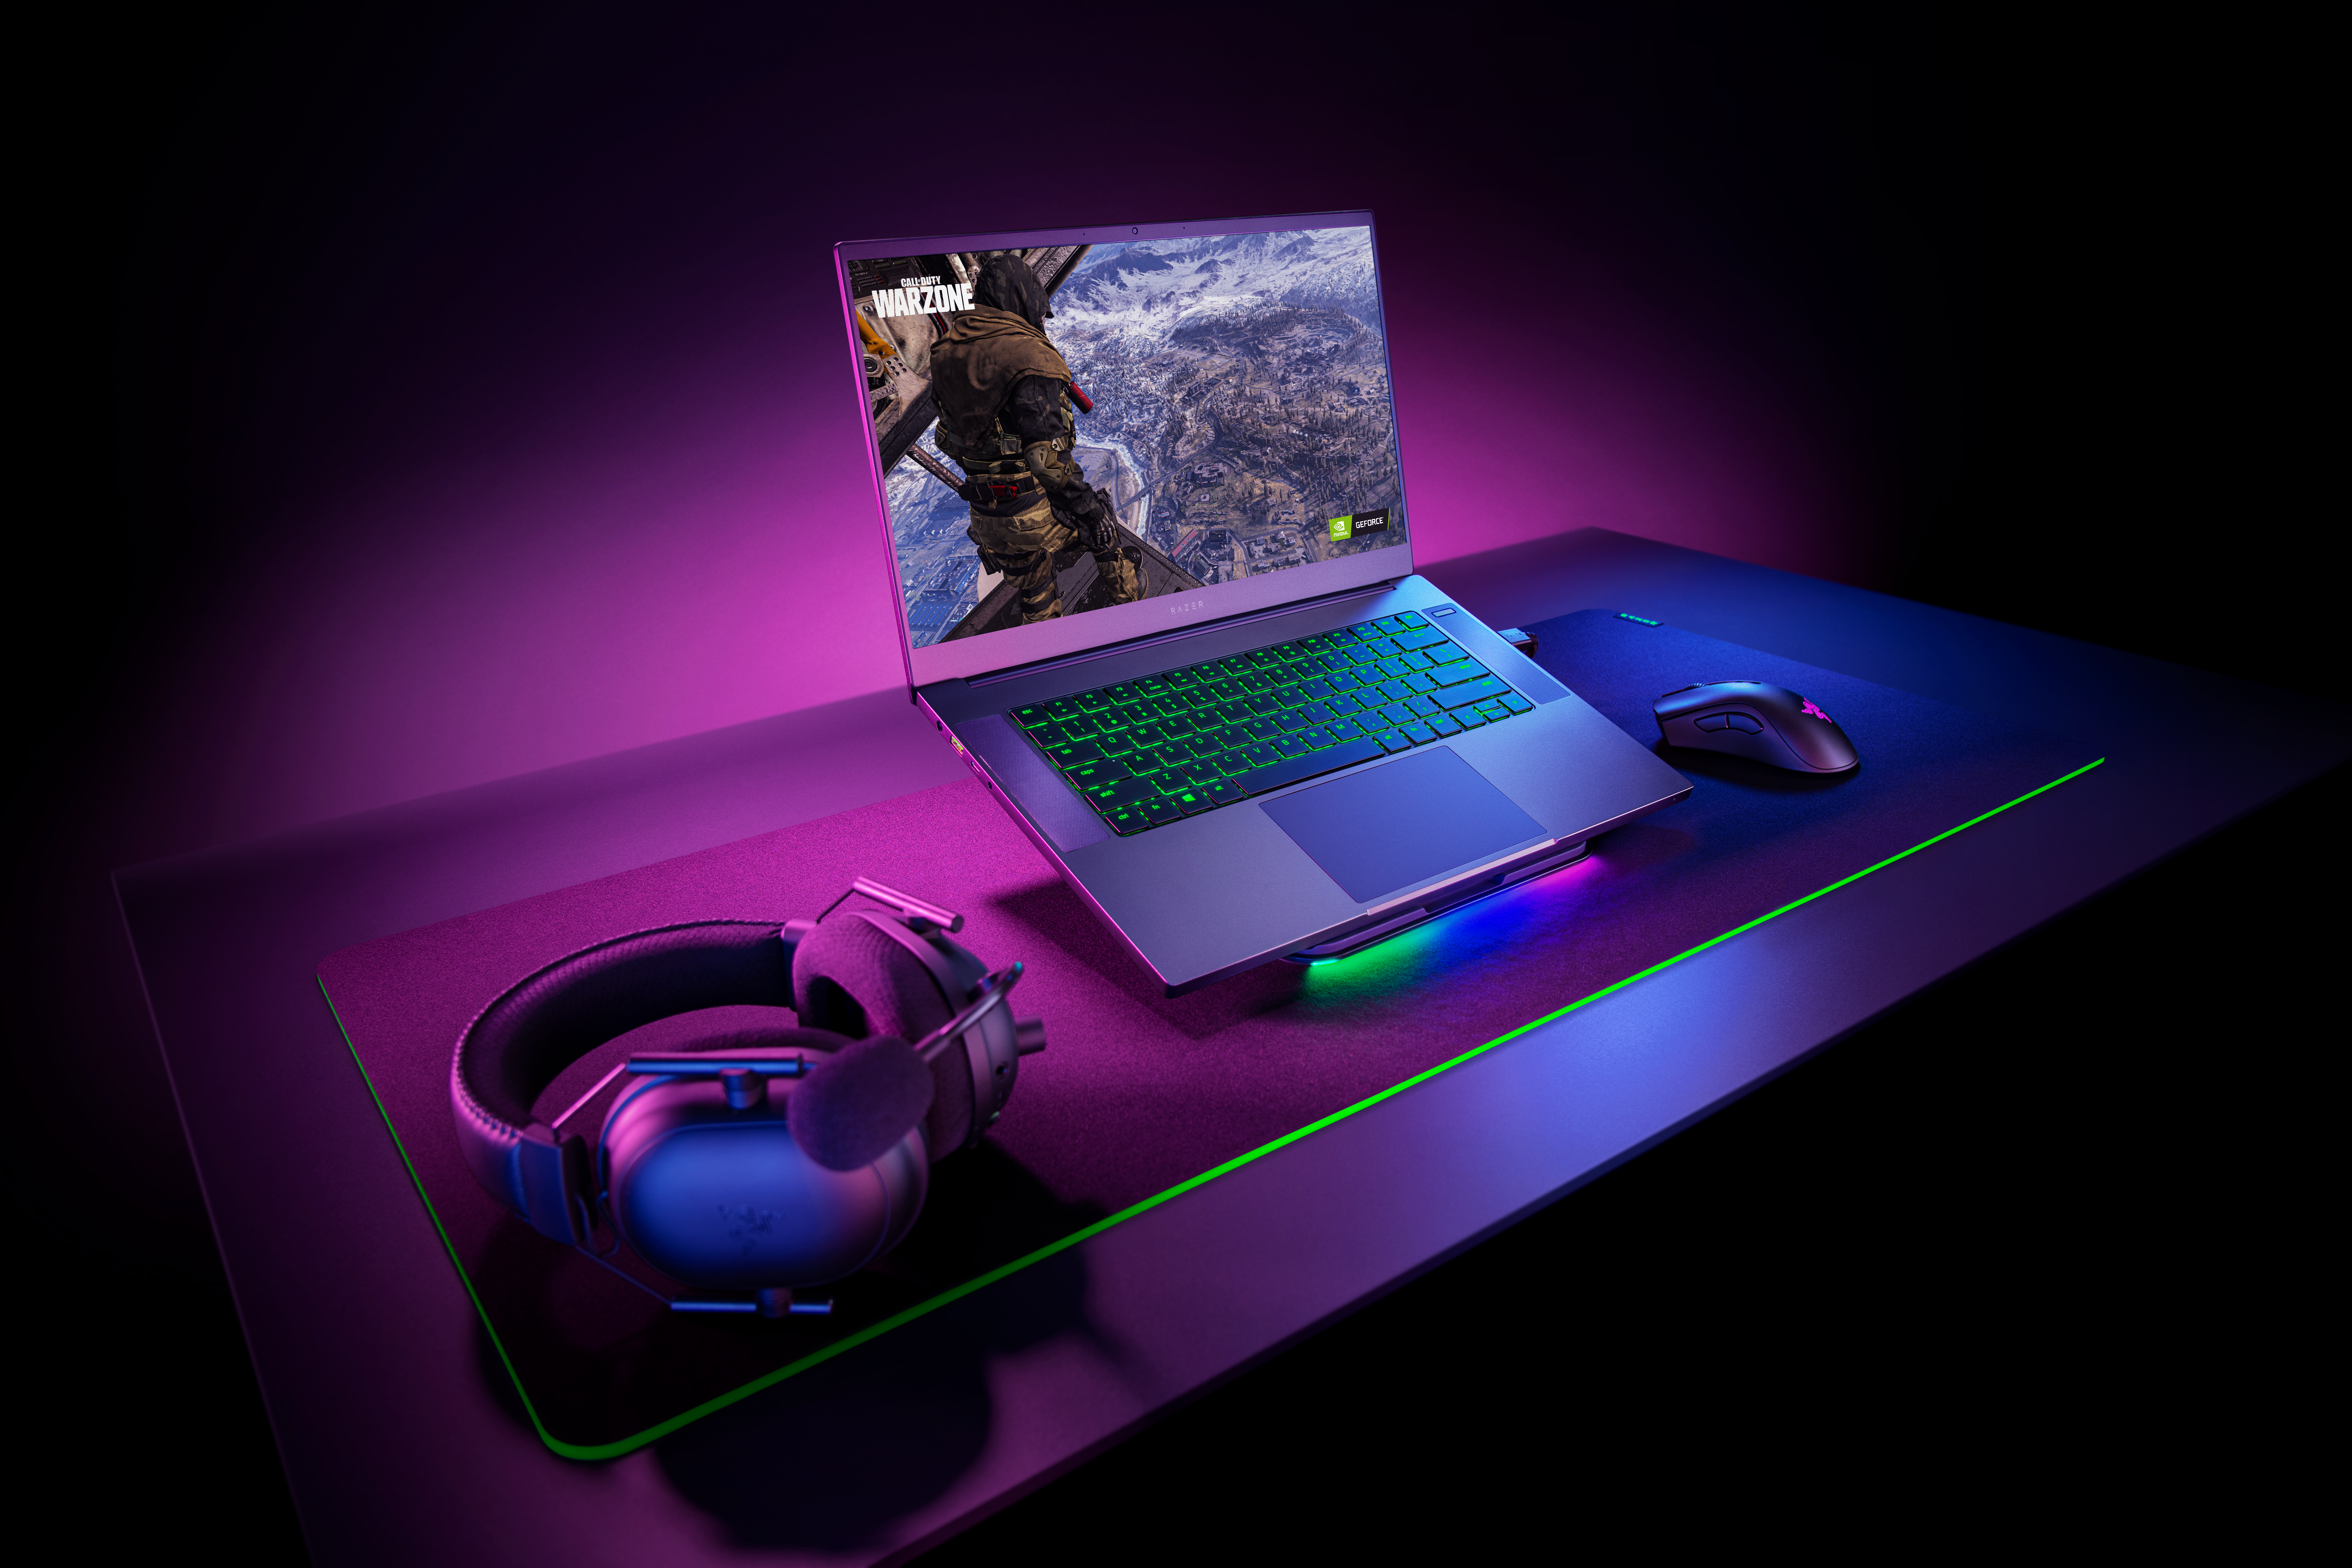 The Razer Blade 15 Base sits on a stand on a table with a pair of headphones and a mouse.